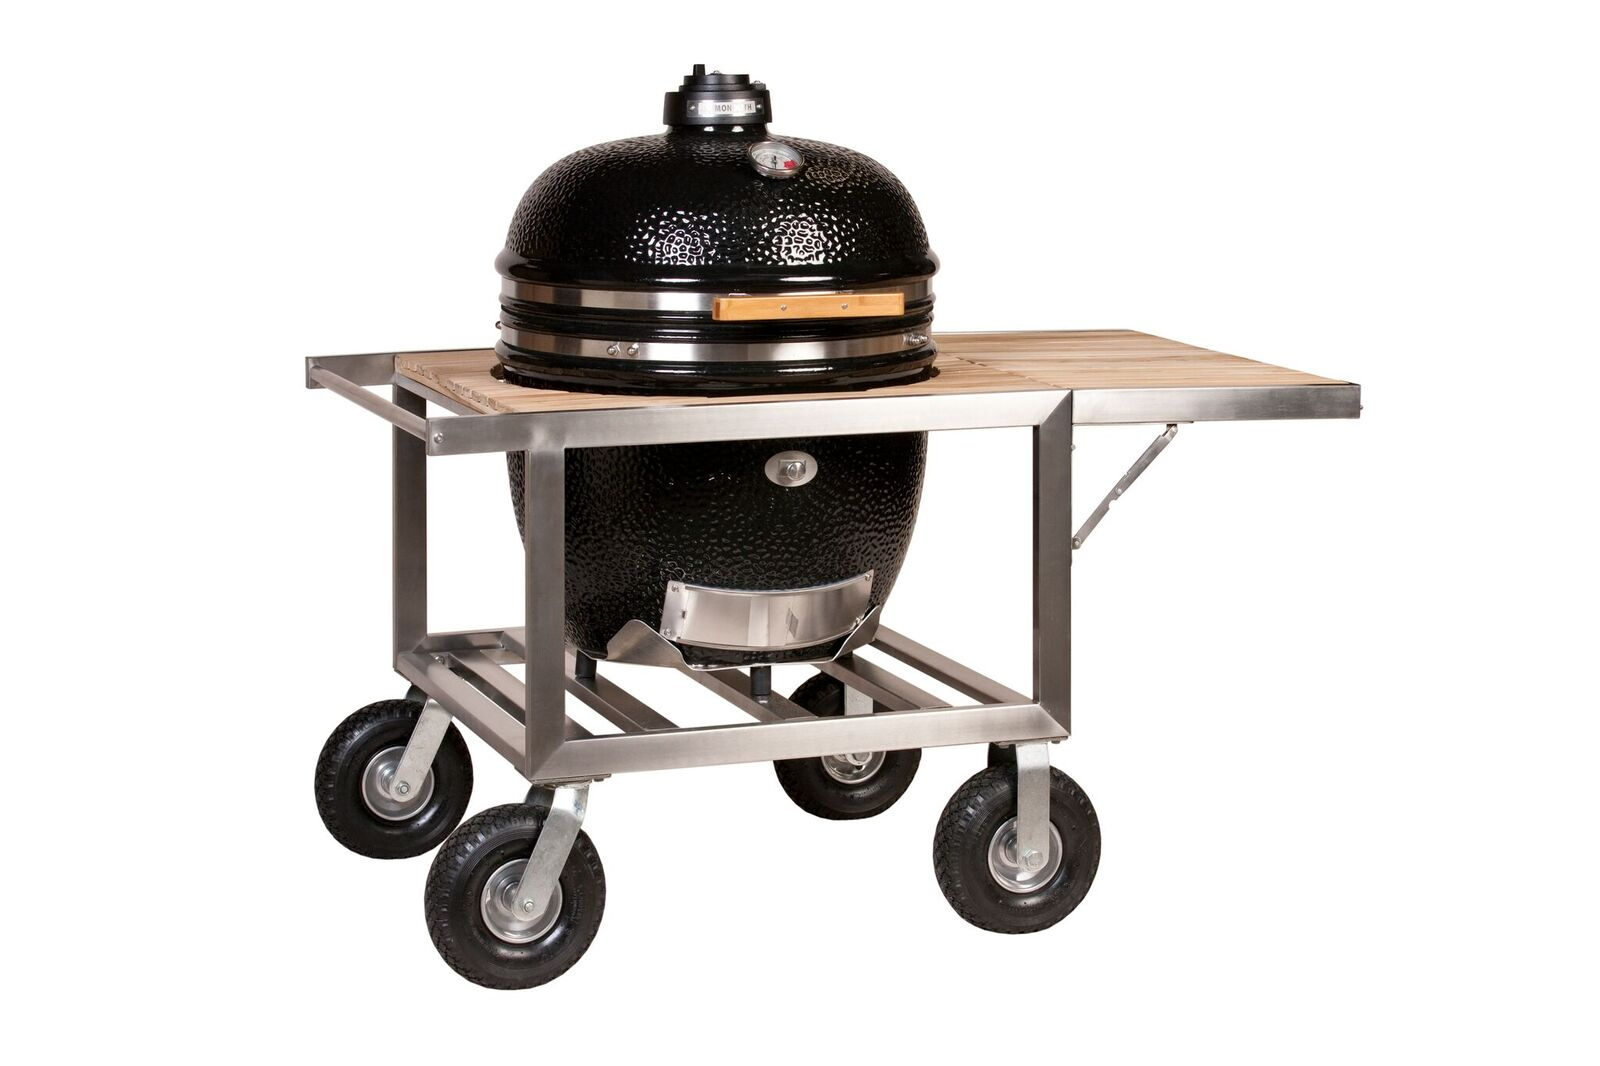 Monolith LeChef bundle including stainless steel framed buggy